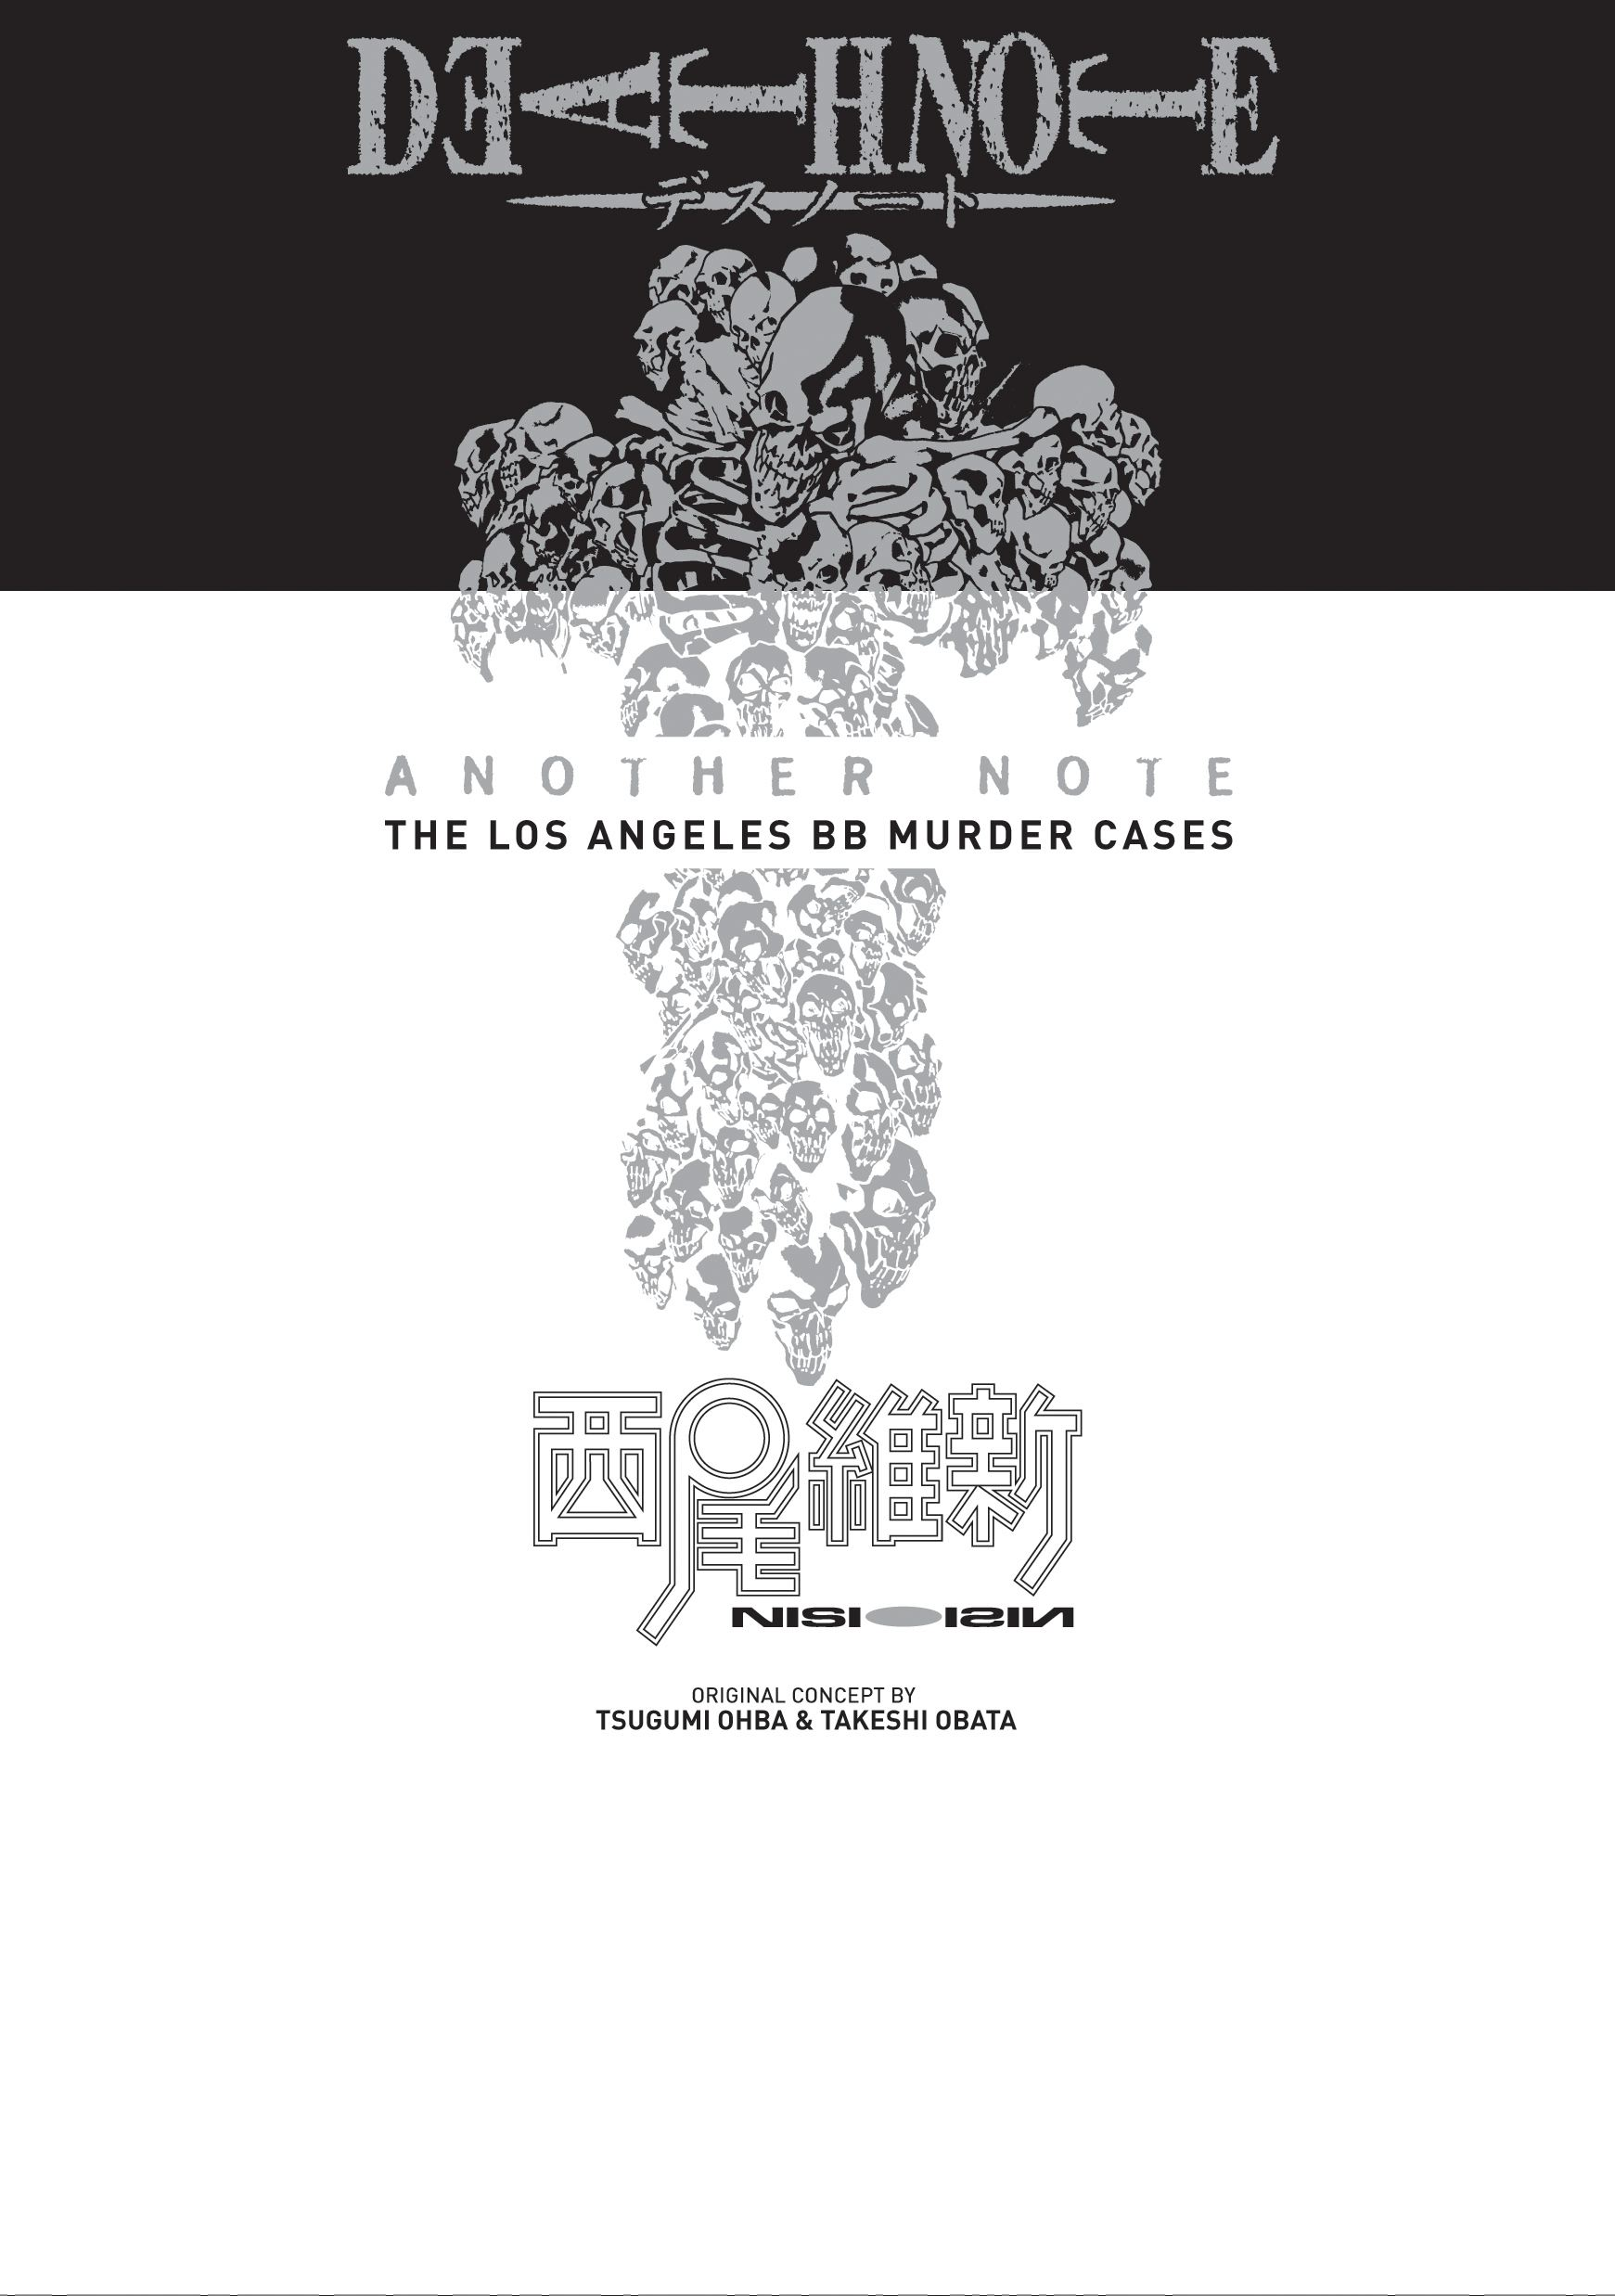 Death note another note novel 9781421518831 hr